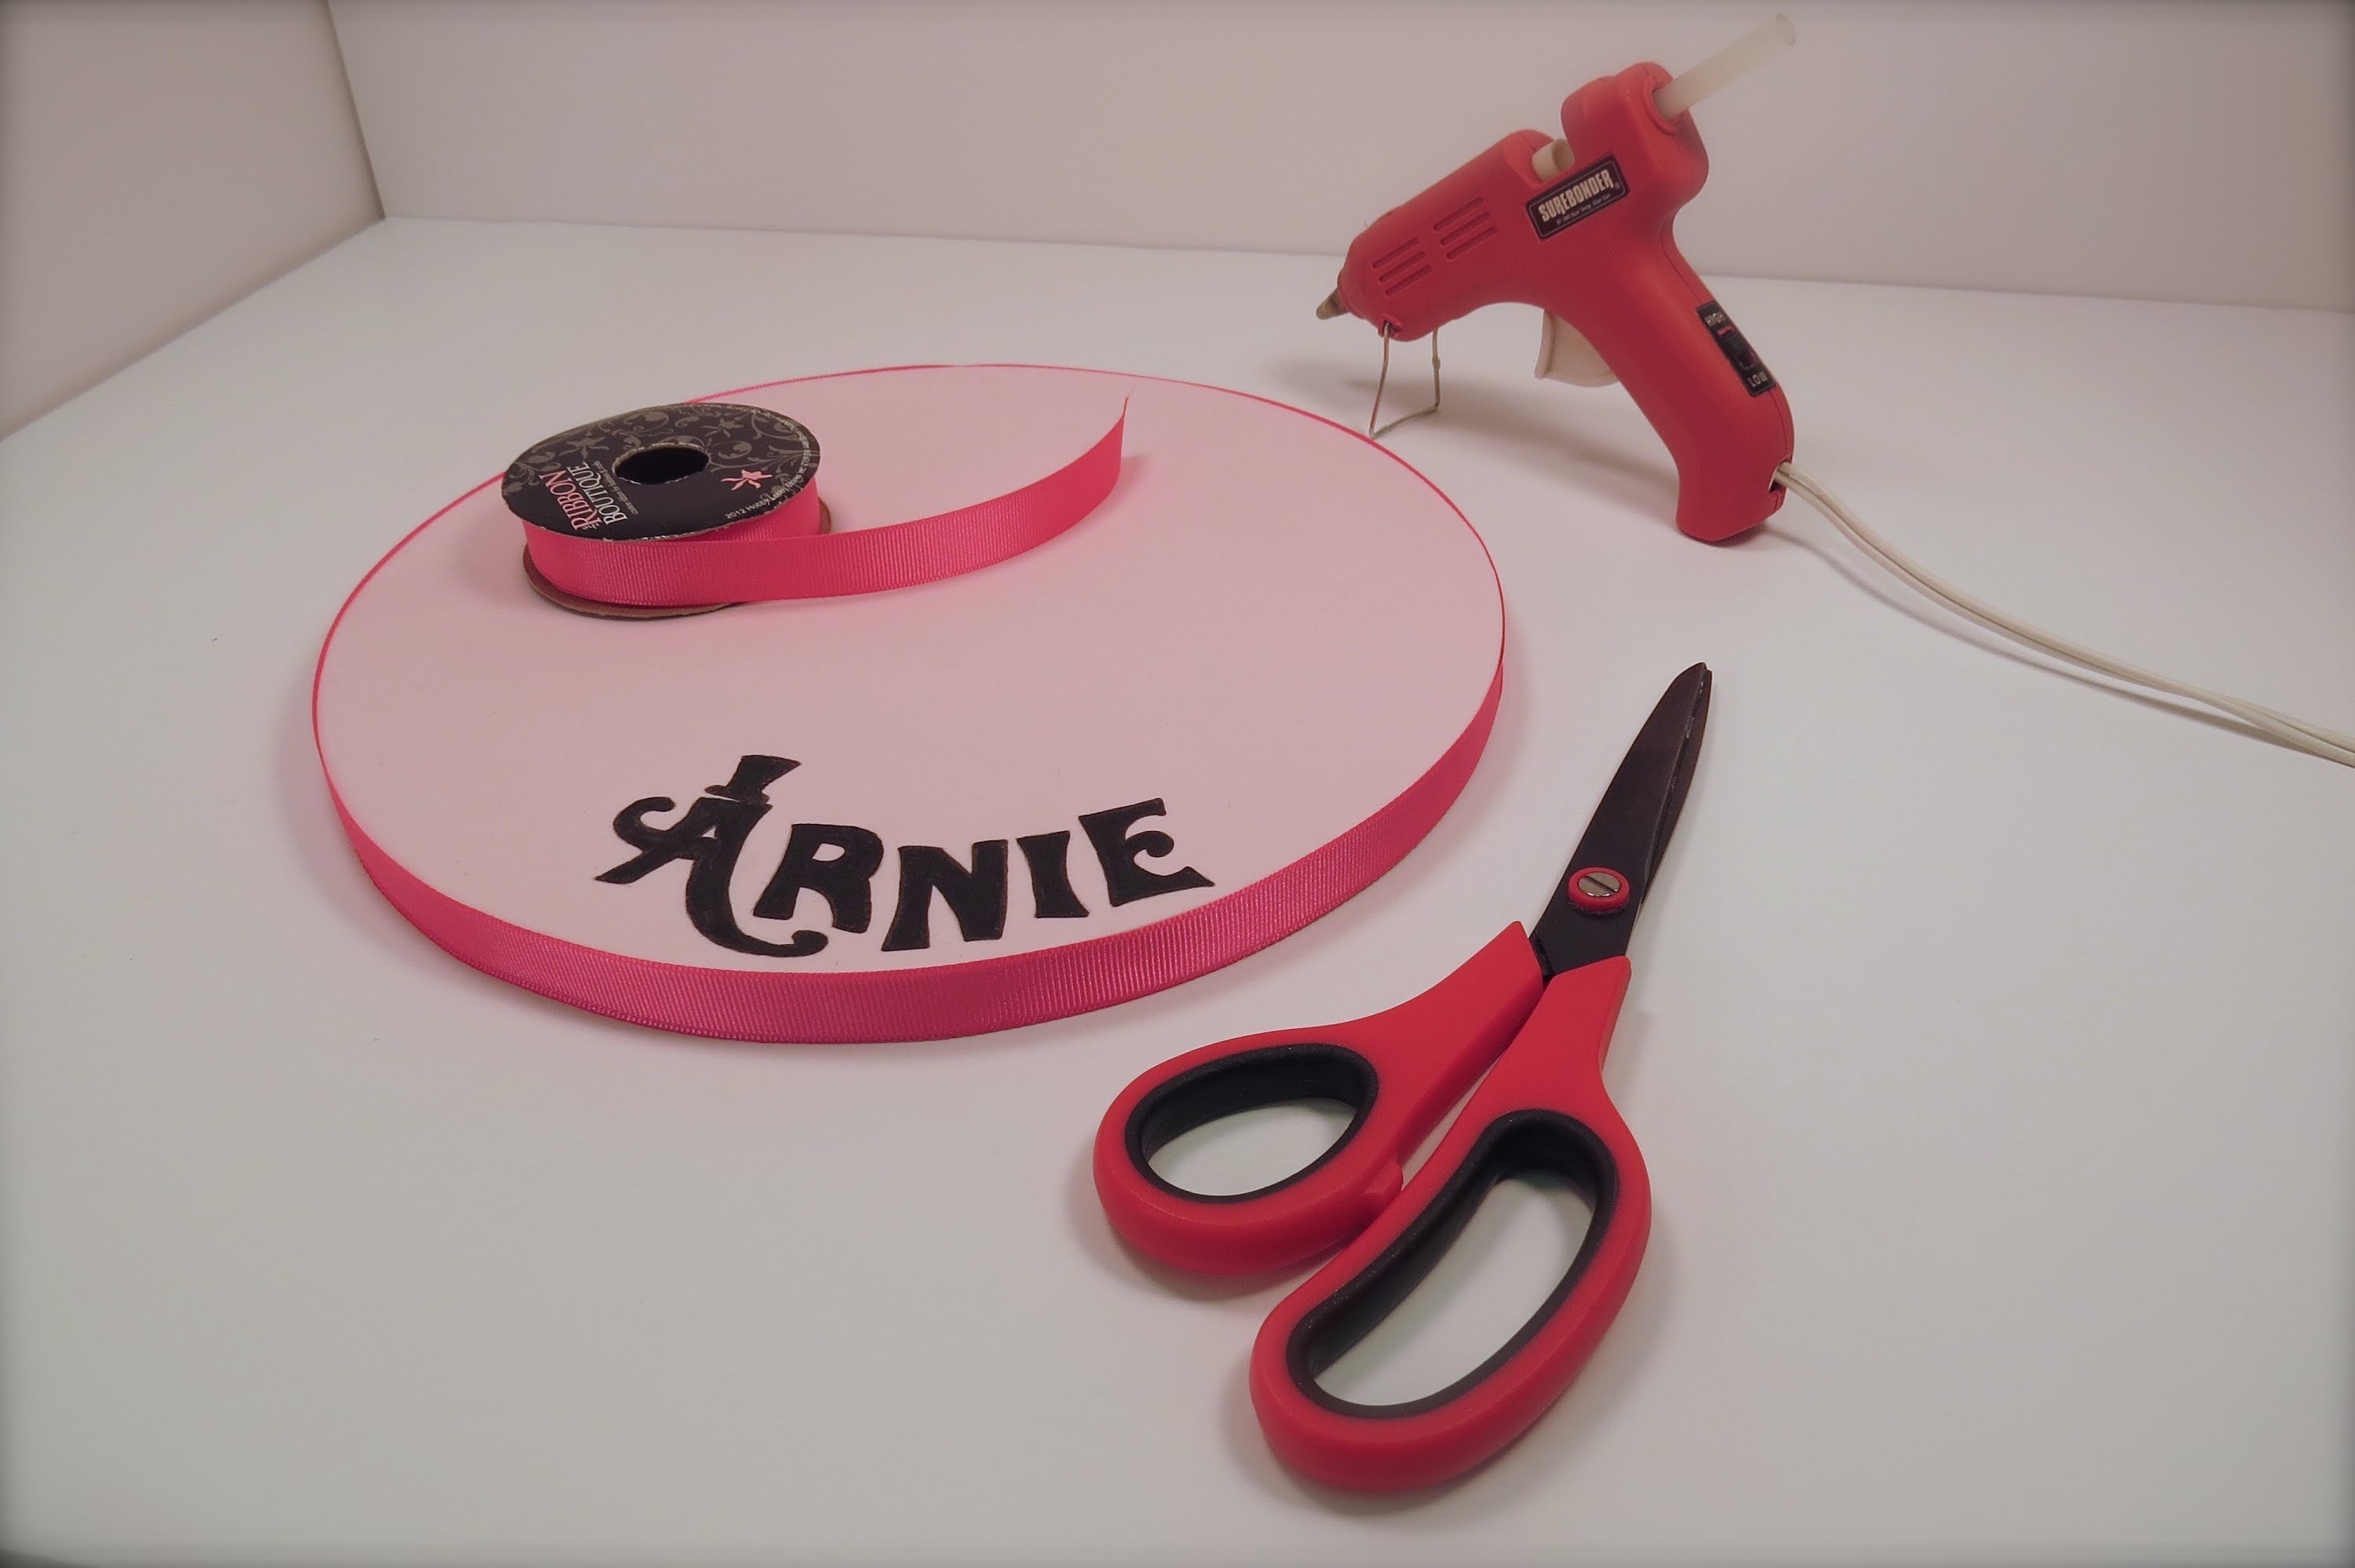 How To Add Ribbon To A Cake Board the Krazy Kool Cakes Way!